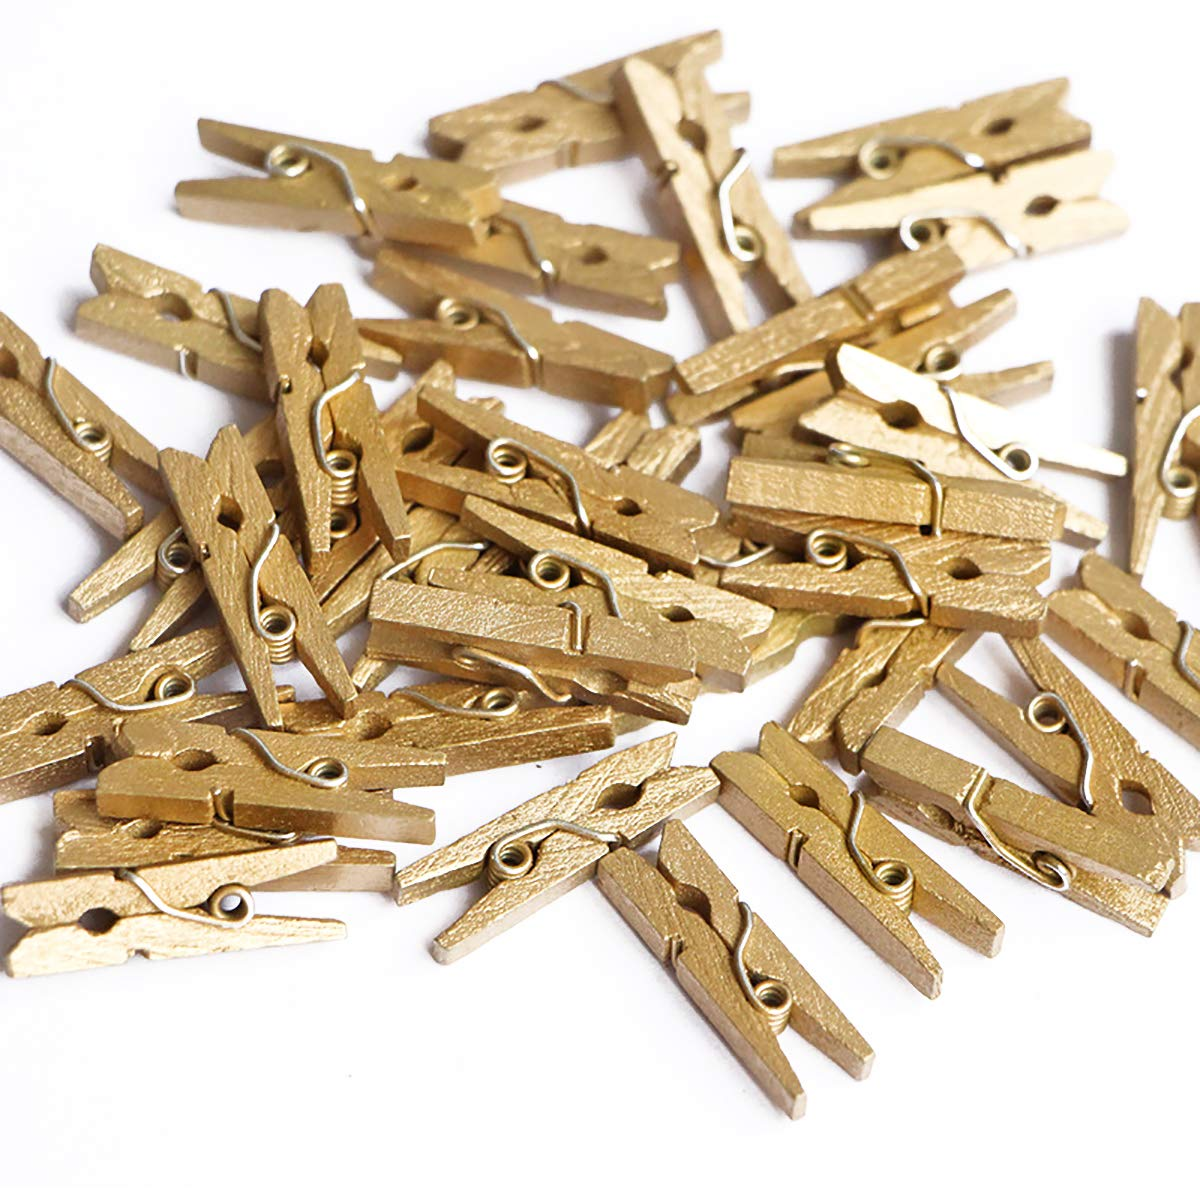 100 Ct Metallic Gold 1.35'' Miniature Wooden Clothespins Photo Paper Pin Craft Clips Wood Peg for DIY Craft Eembellishment New Year Christmas Great Gatsby Party Decoration Rustic Wedding Baby Shower by ALLHEARTDESIRES